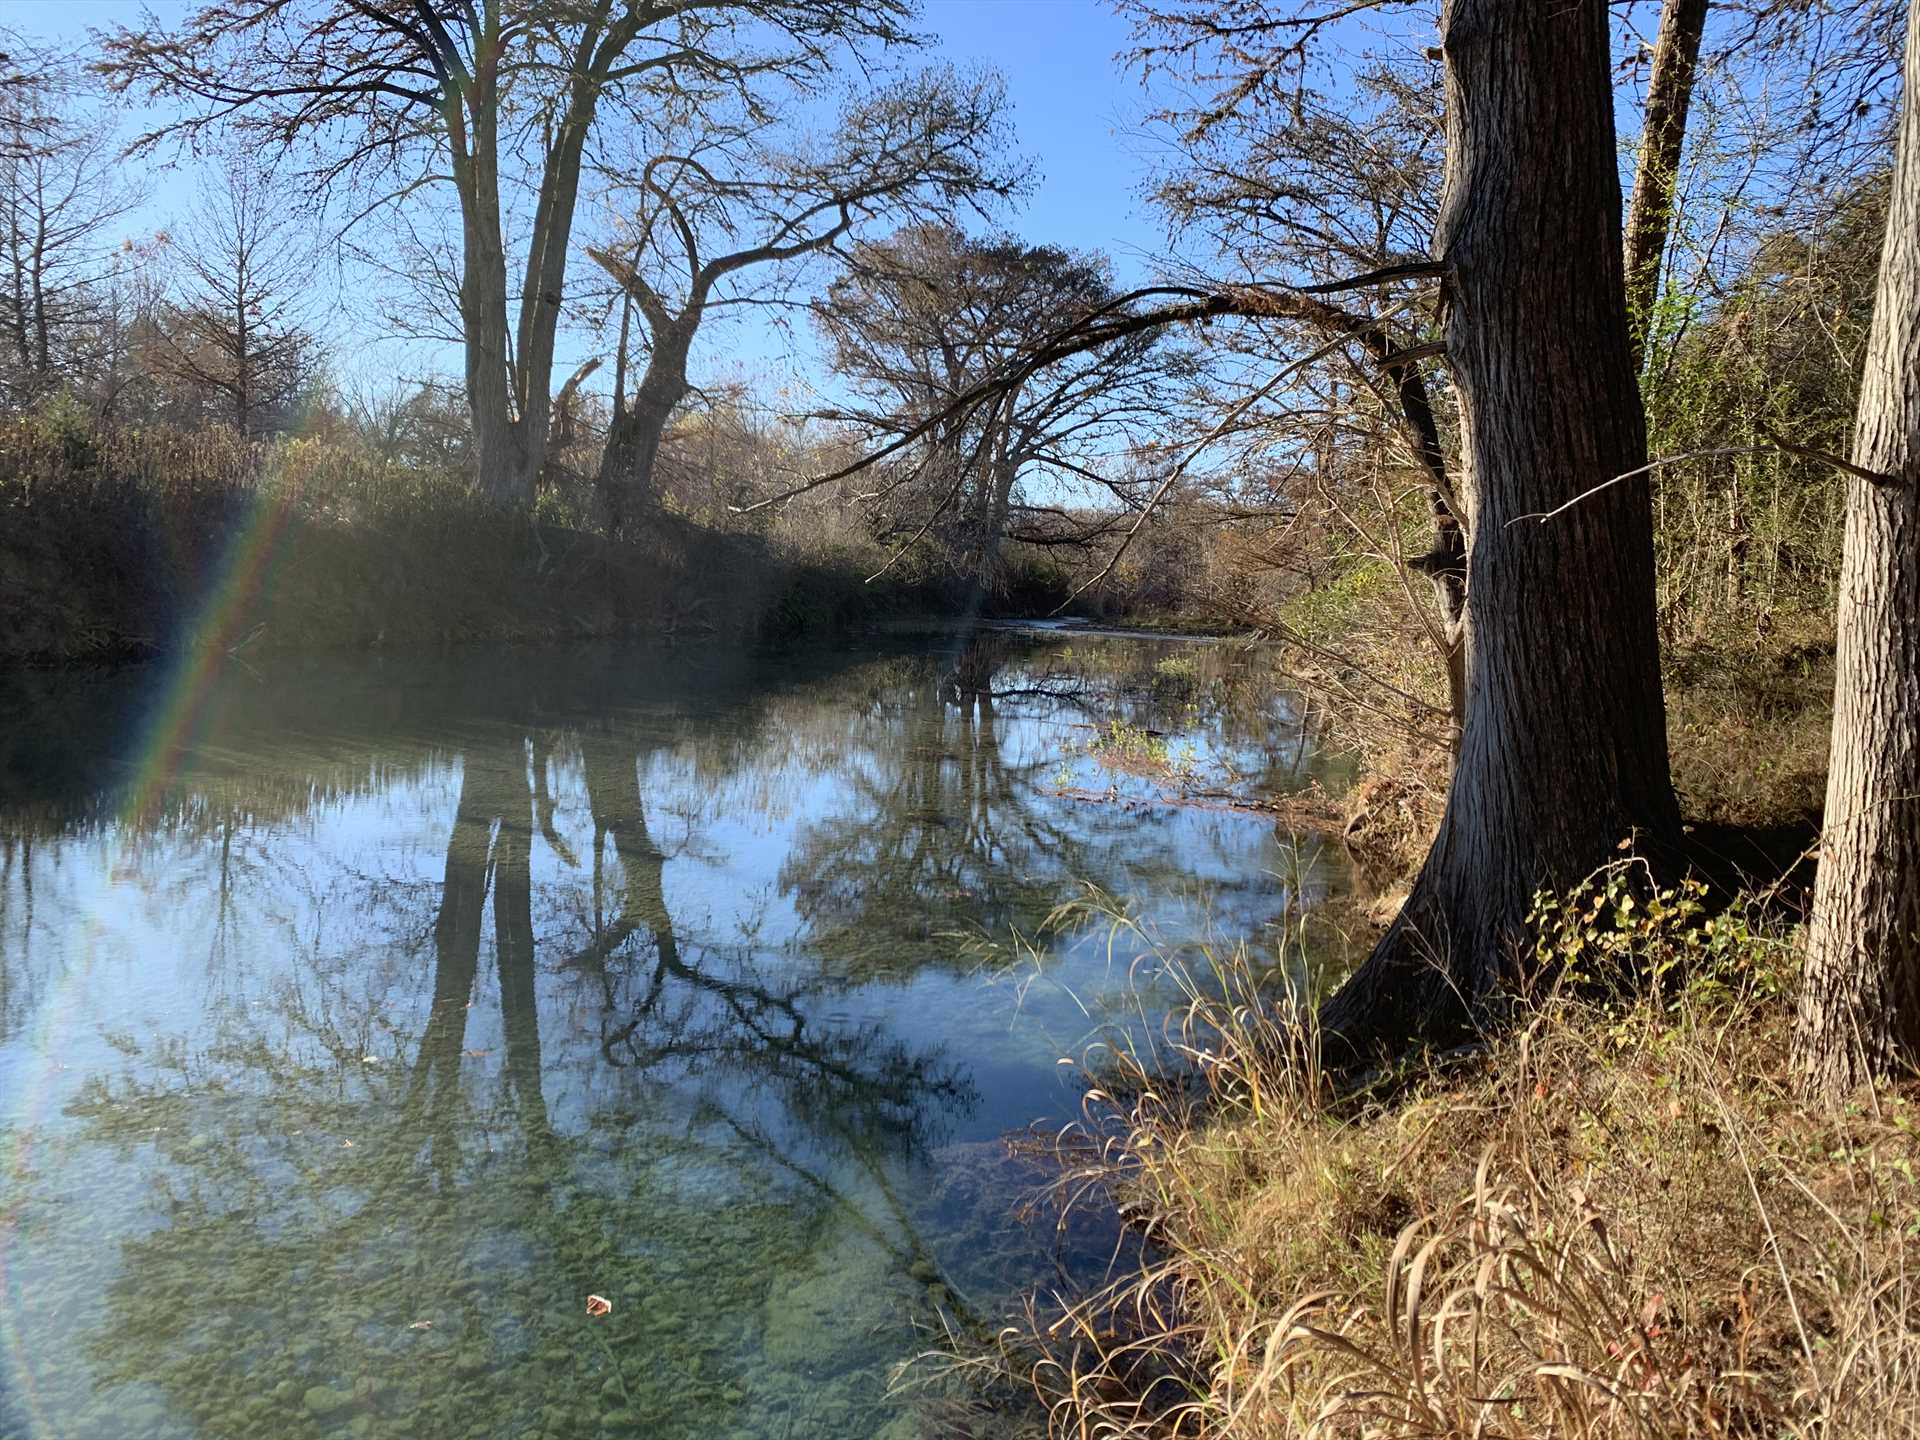 The Medina River's yours to enjoy! As our guest Jodi put it,